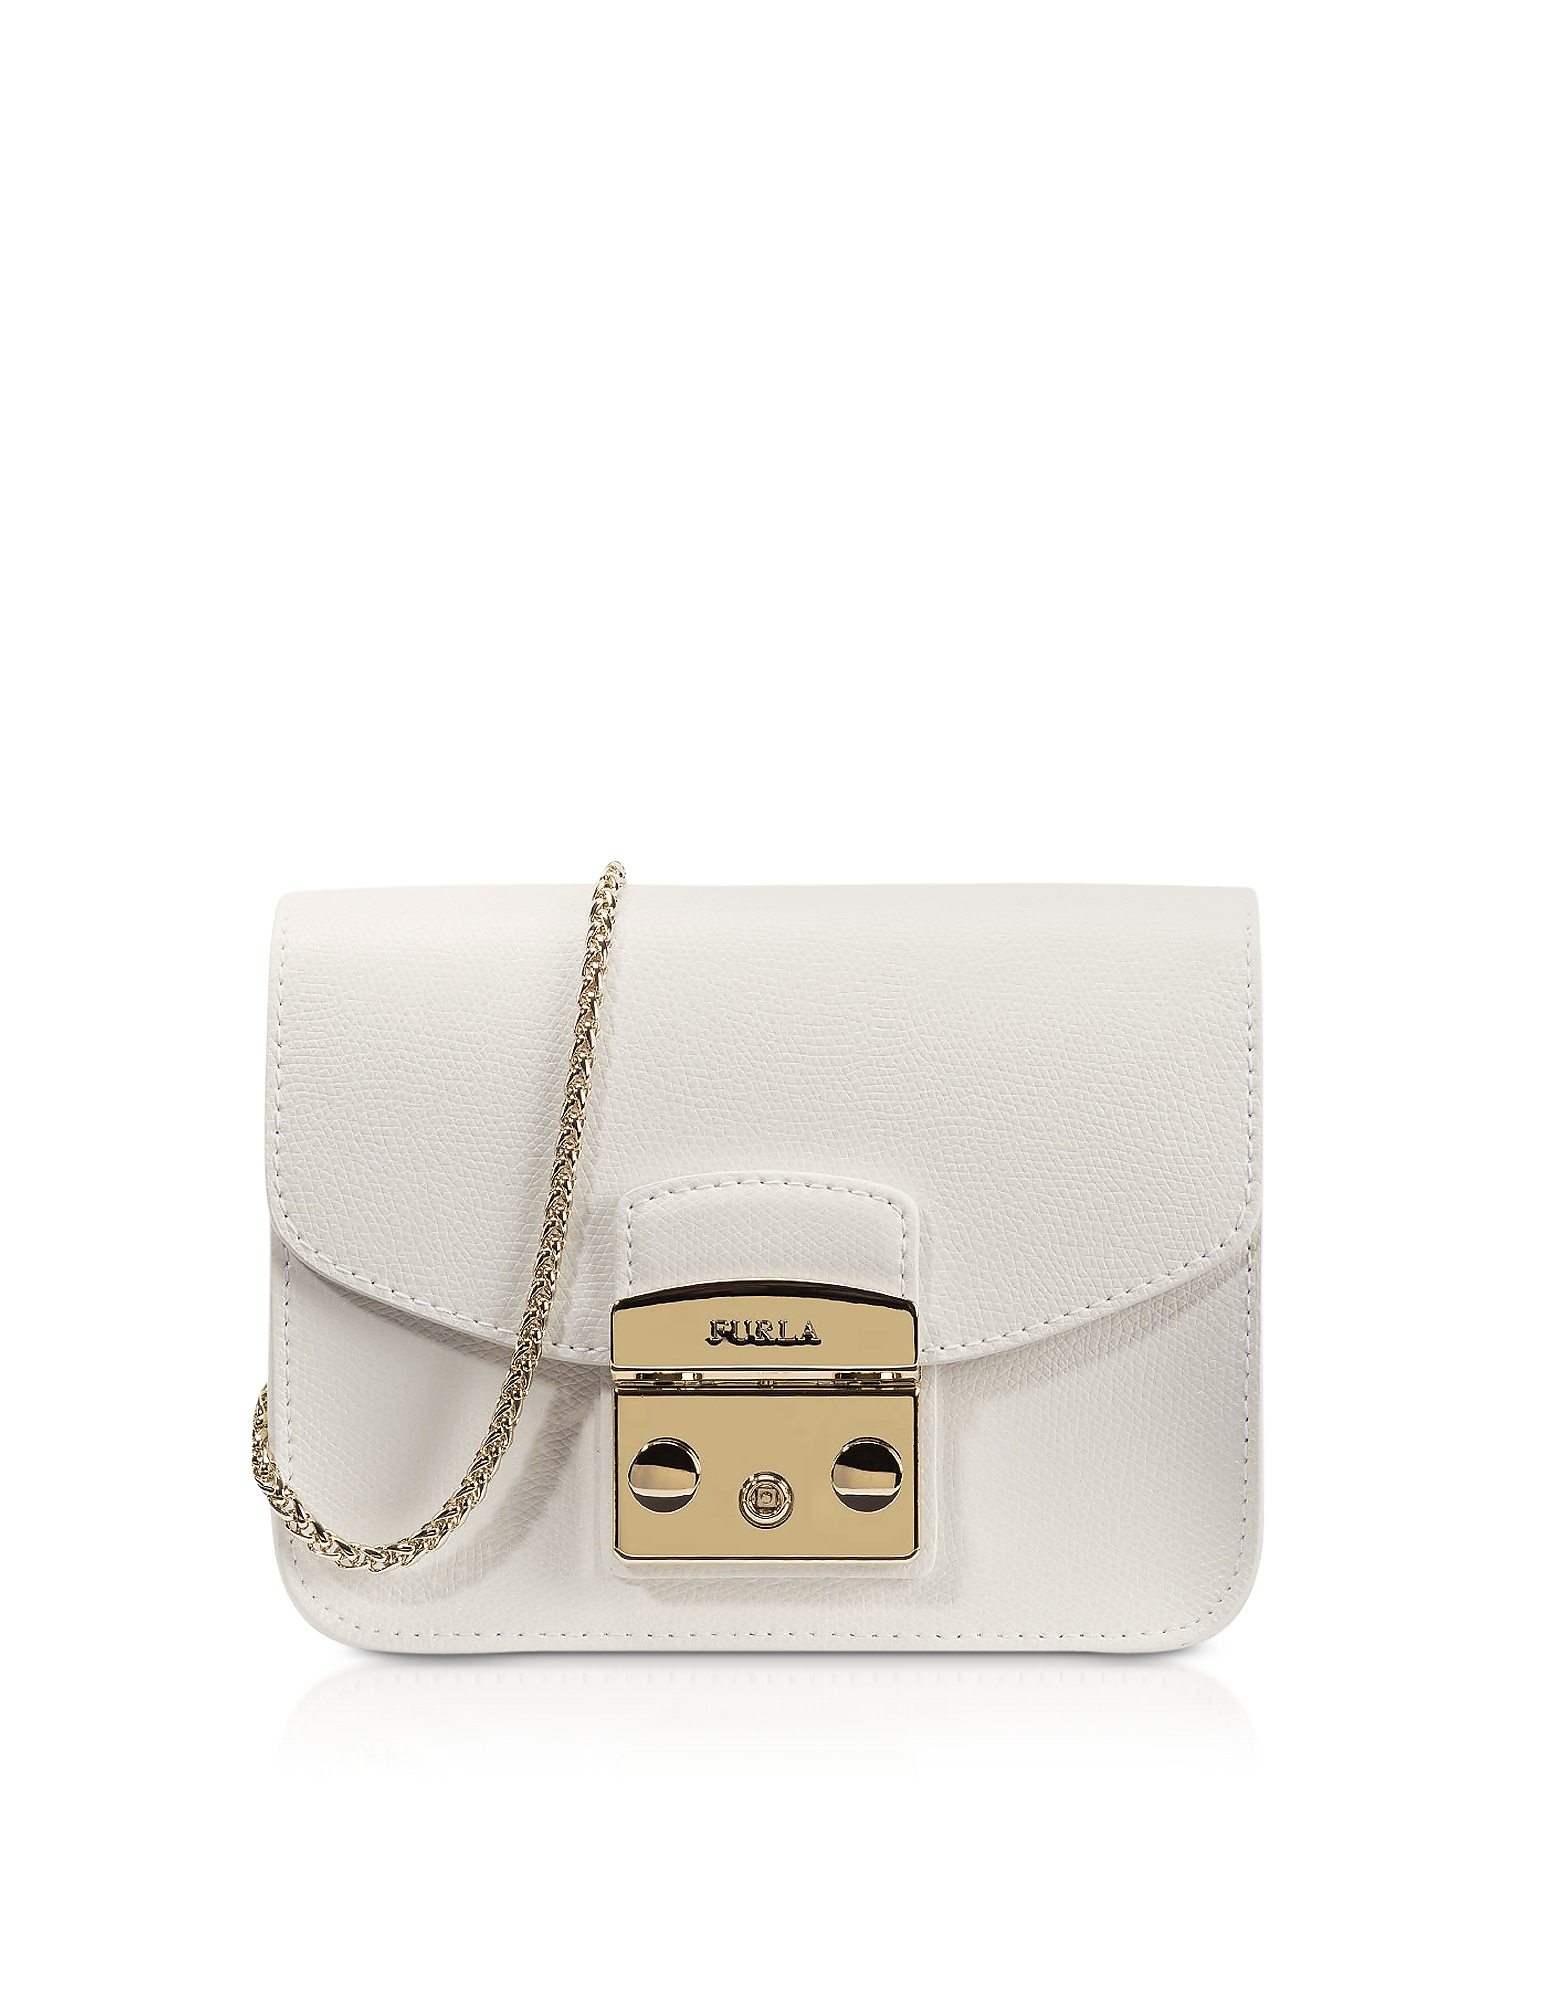 Furla Handbags, Metropolis Petalo Leather Mini Crossbody Bag